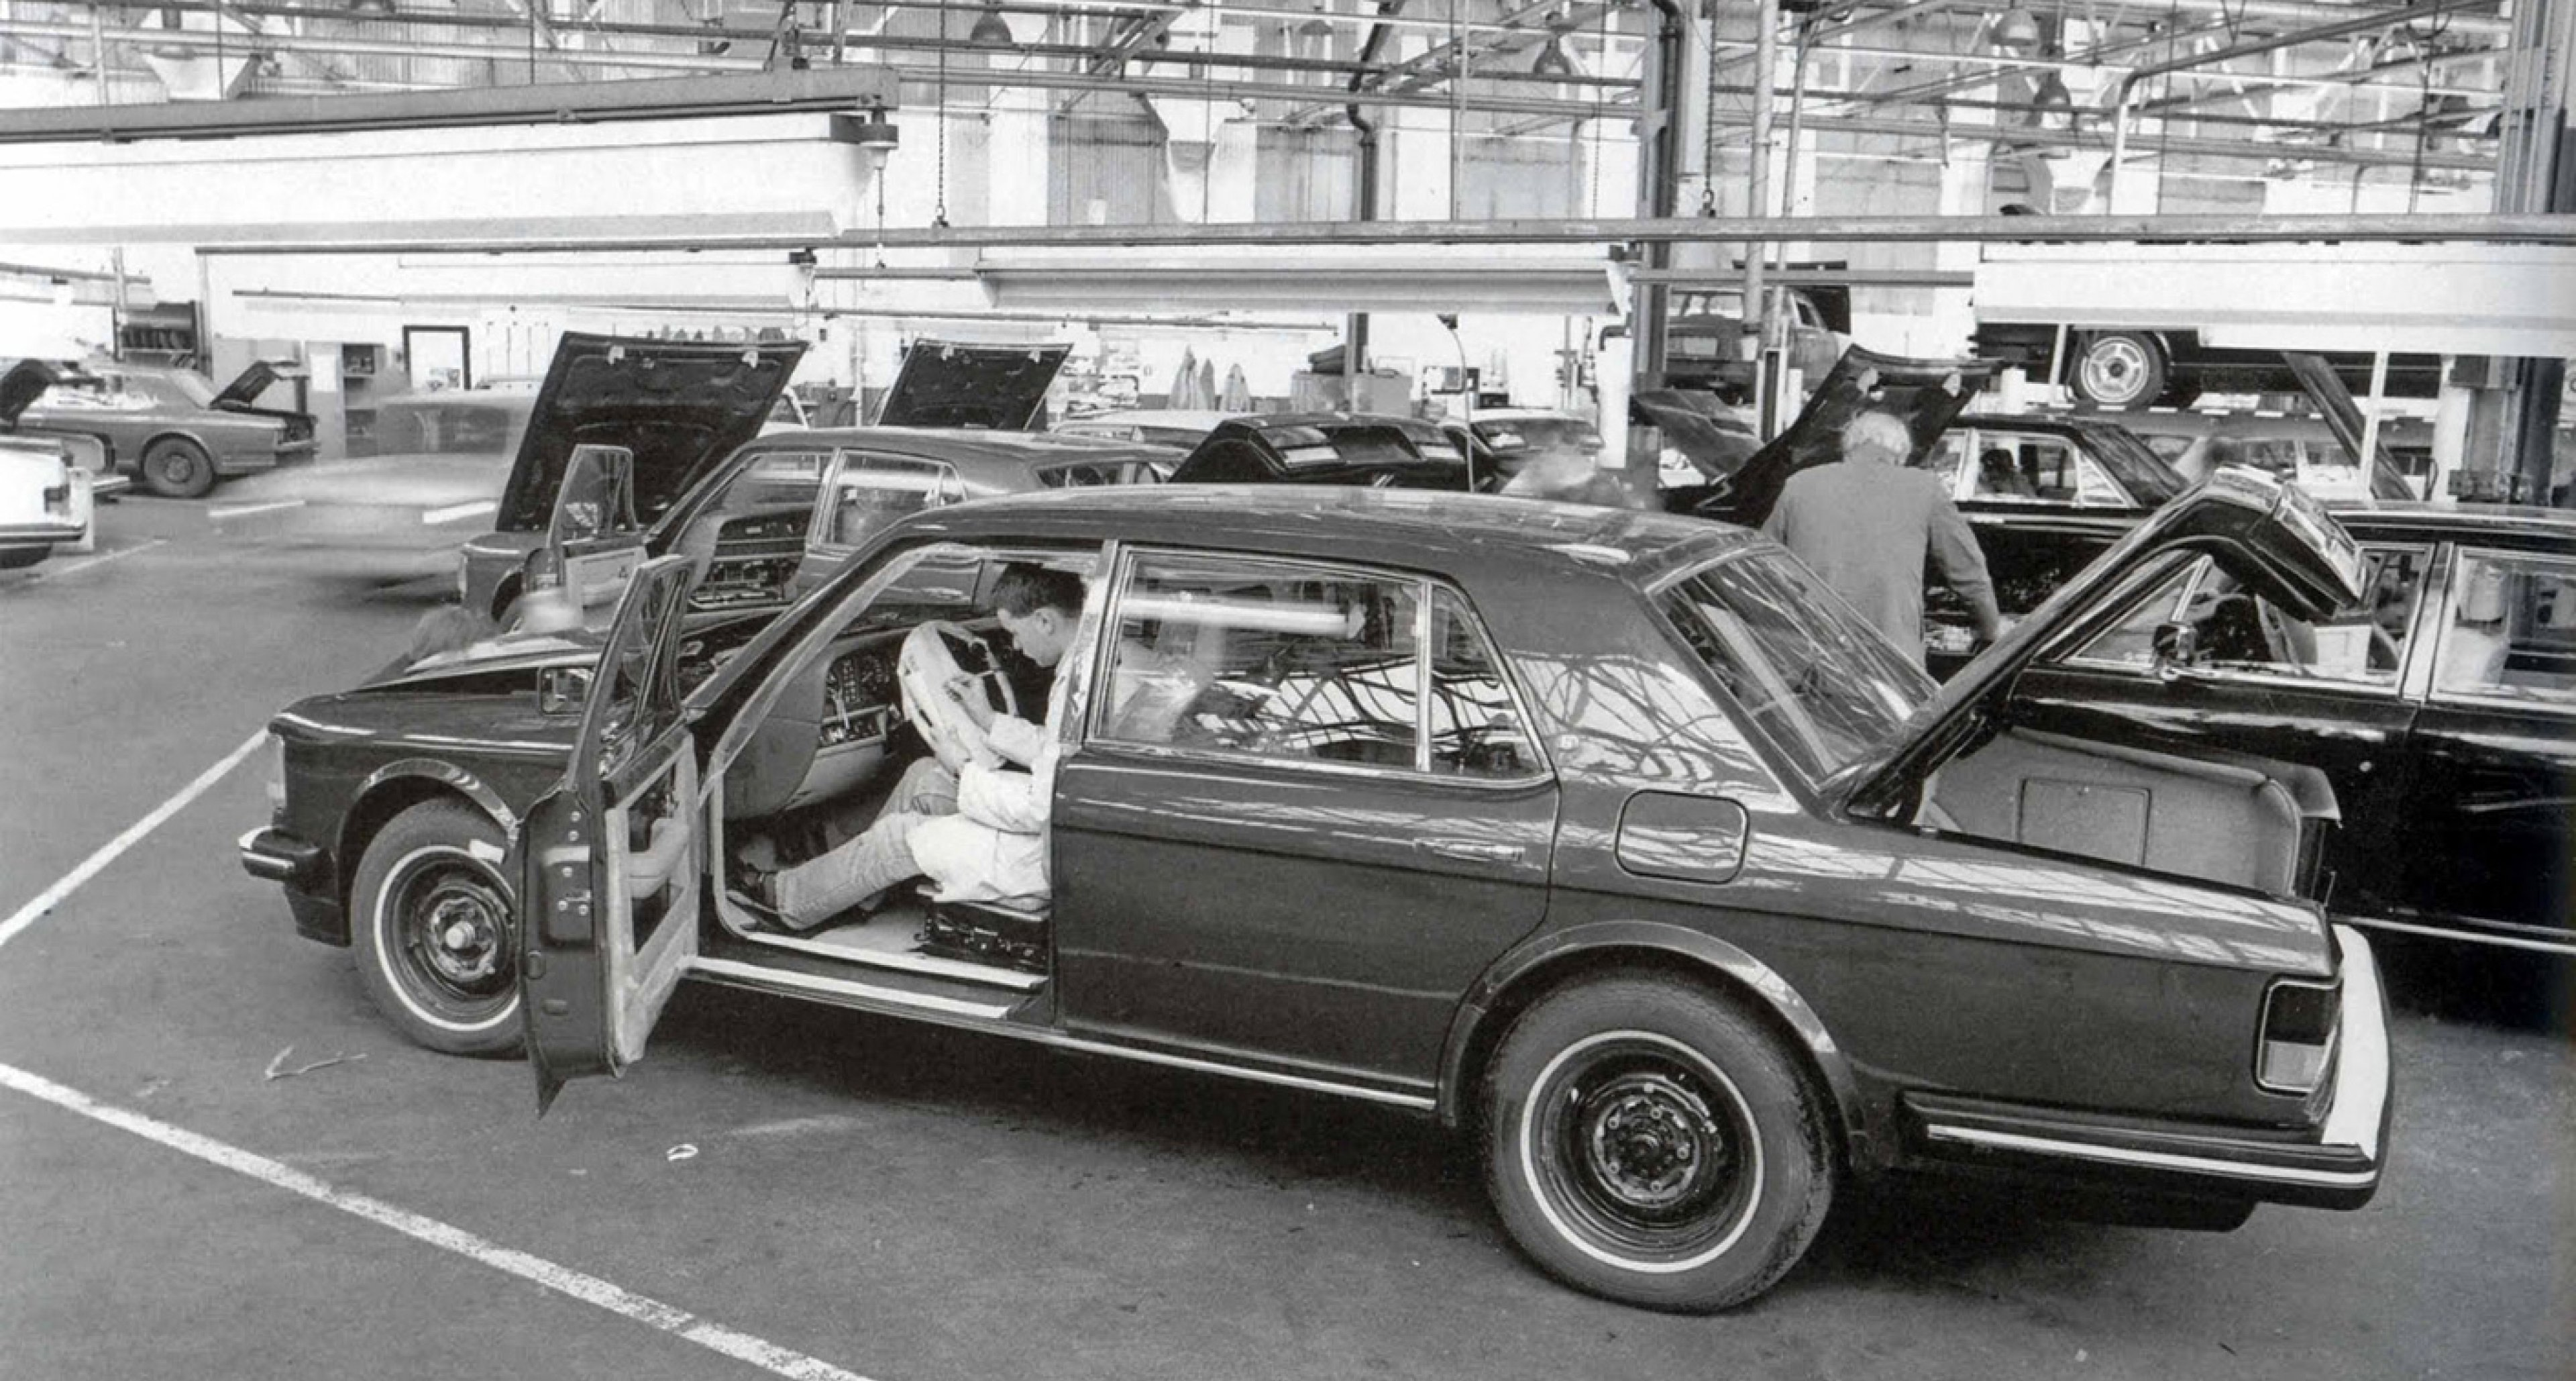 A Bentley Turbo undergoing testing at Crewe